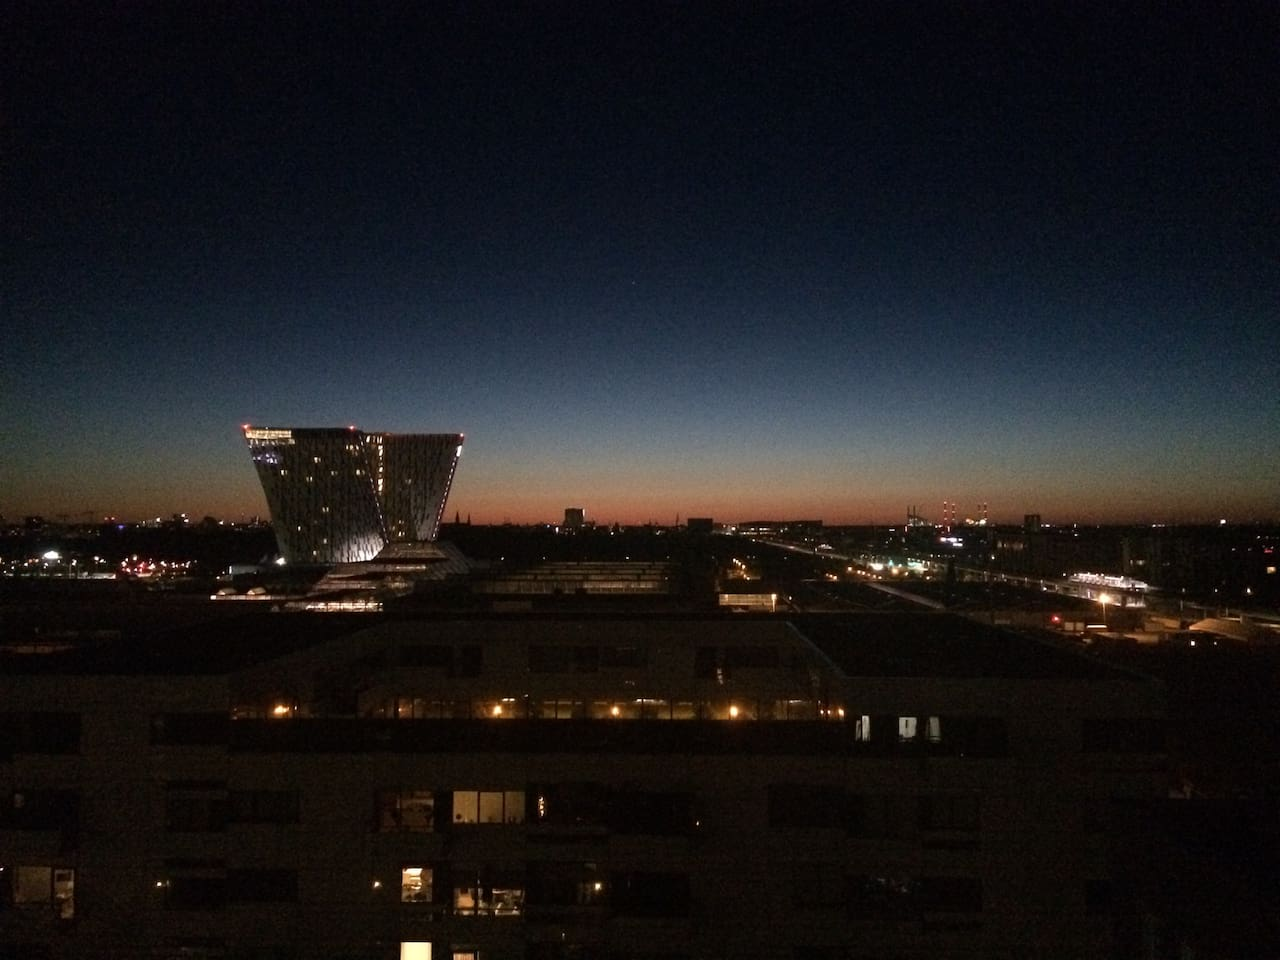 Copenhagen evening, with the Bella Sky hotel and Conference Center in the foreground